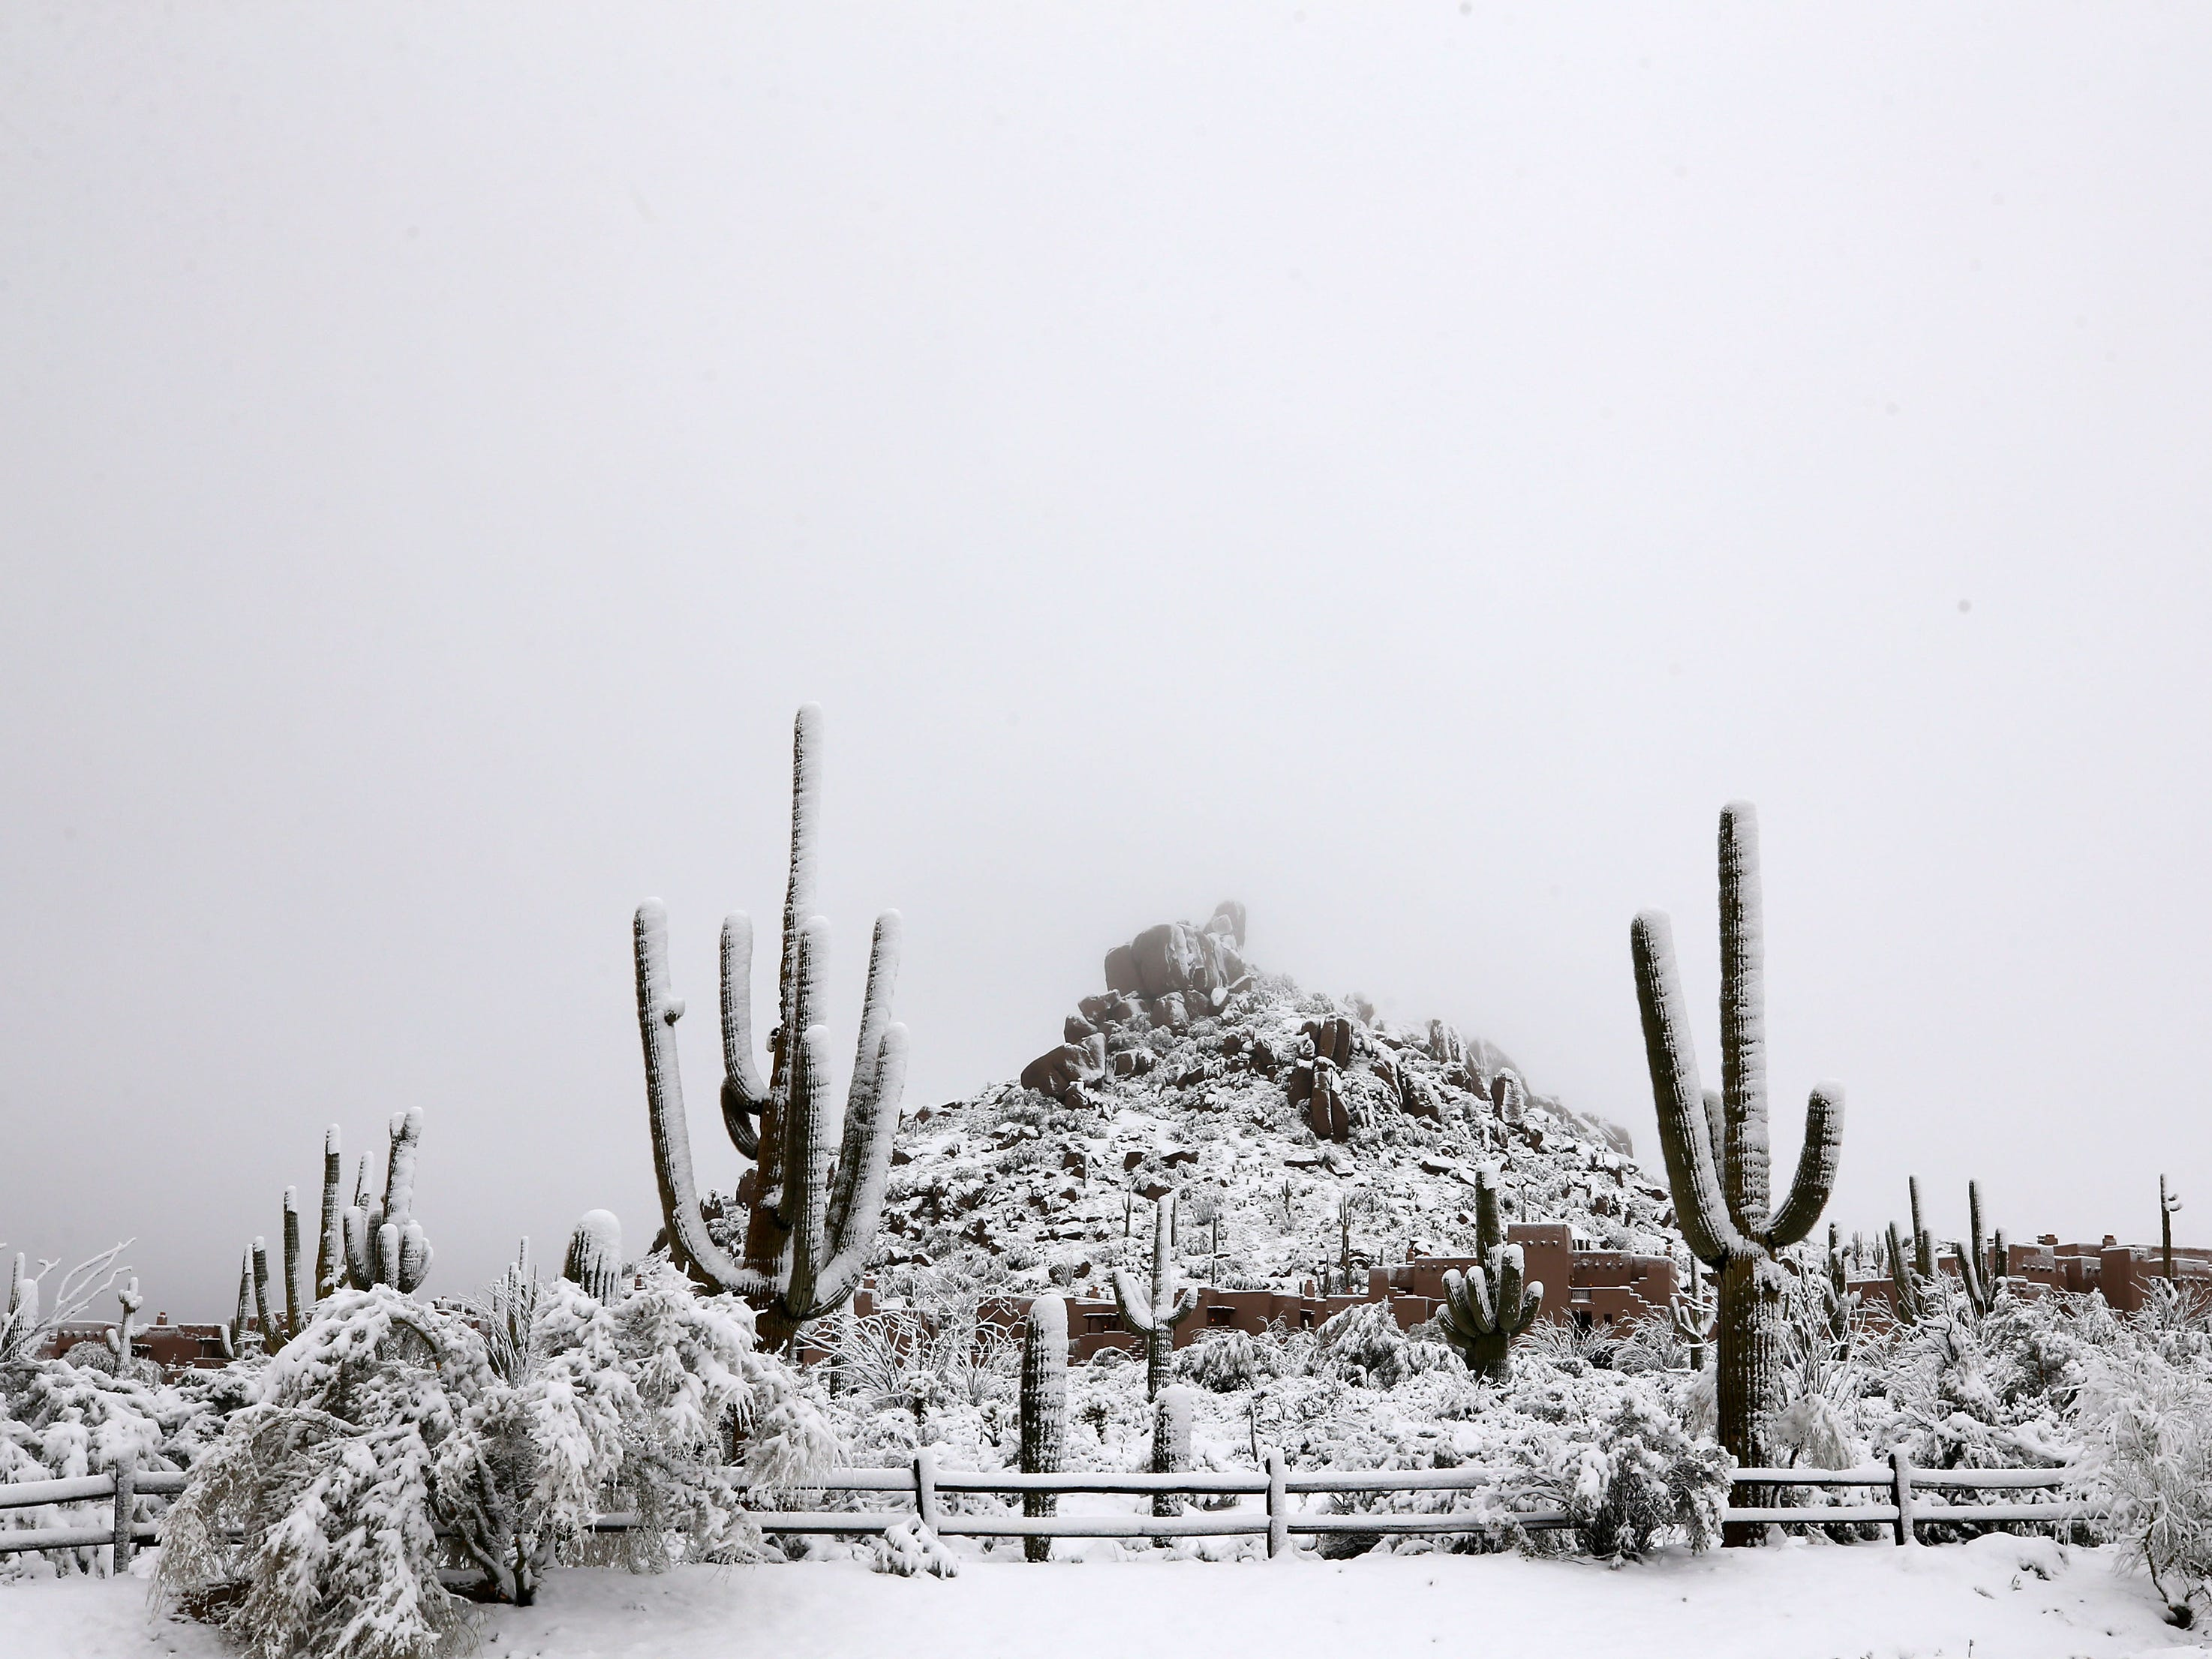 A winter storm brought 6 inches of snow to this high desert area on Feb. 22, 2019 in Scottsdale, Ariz.